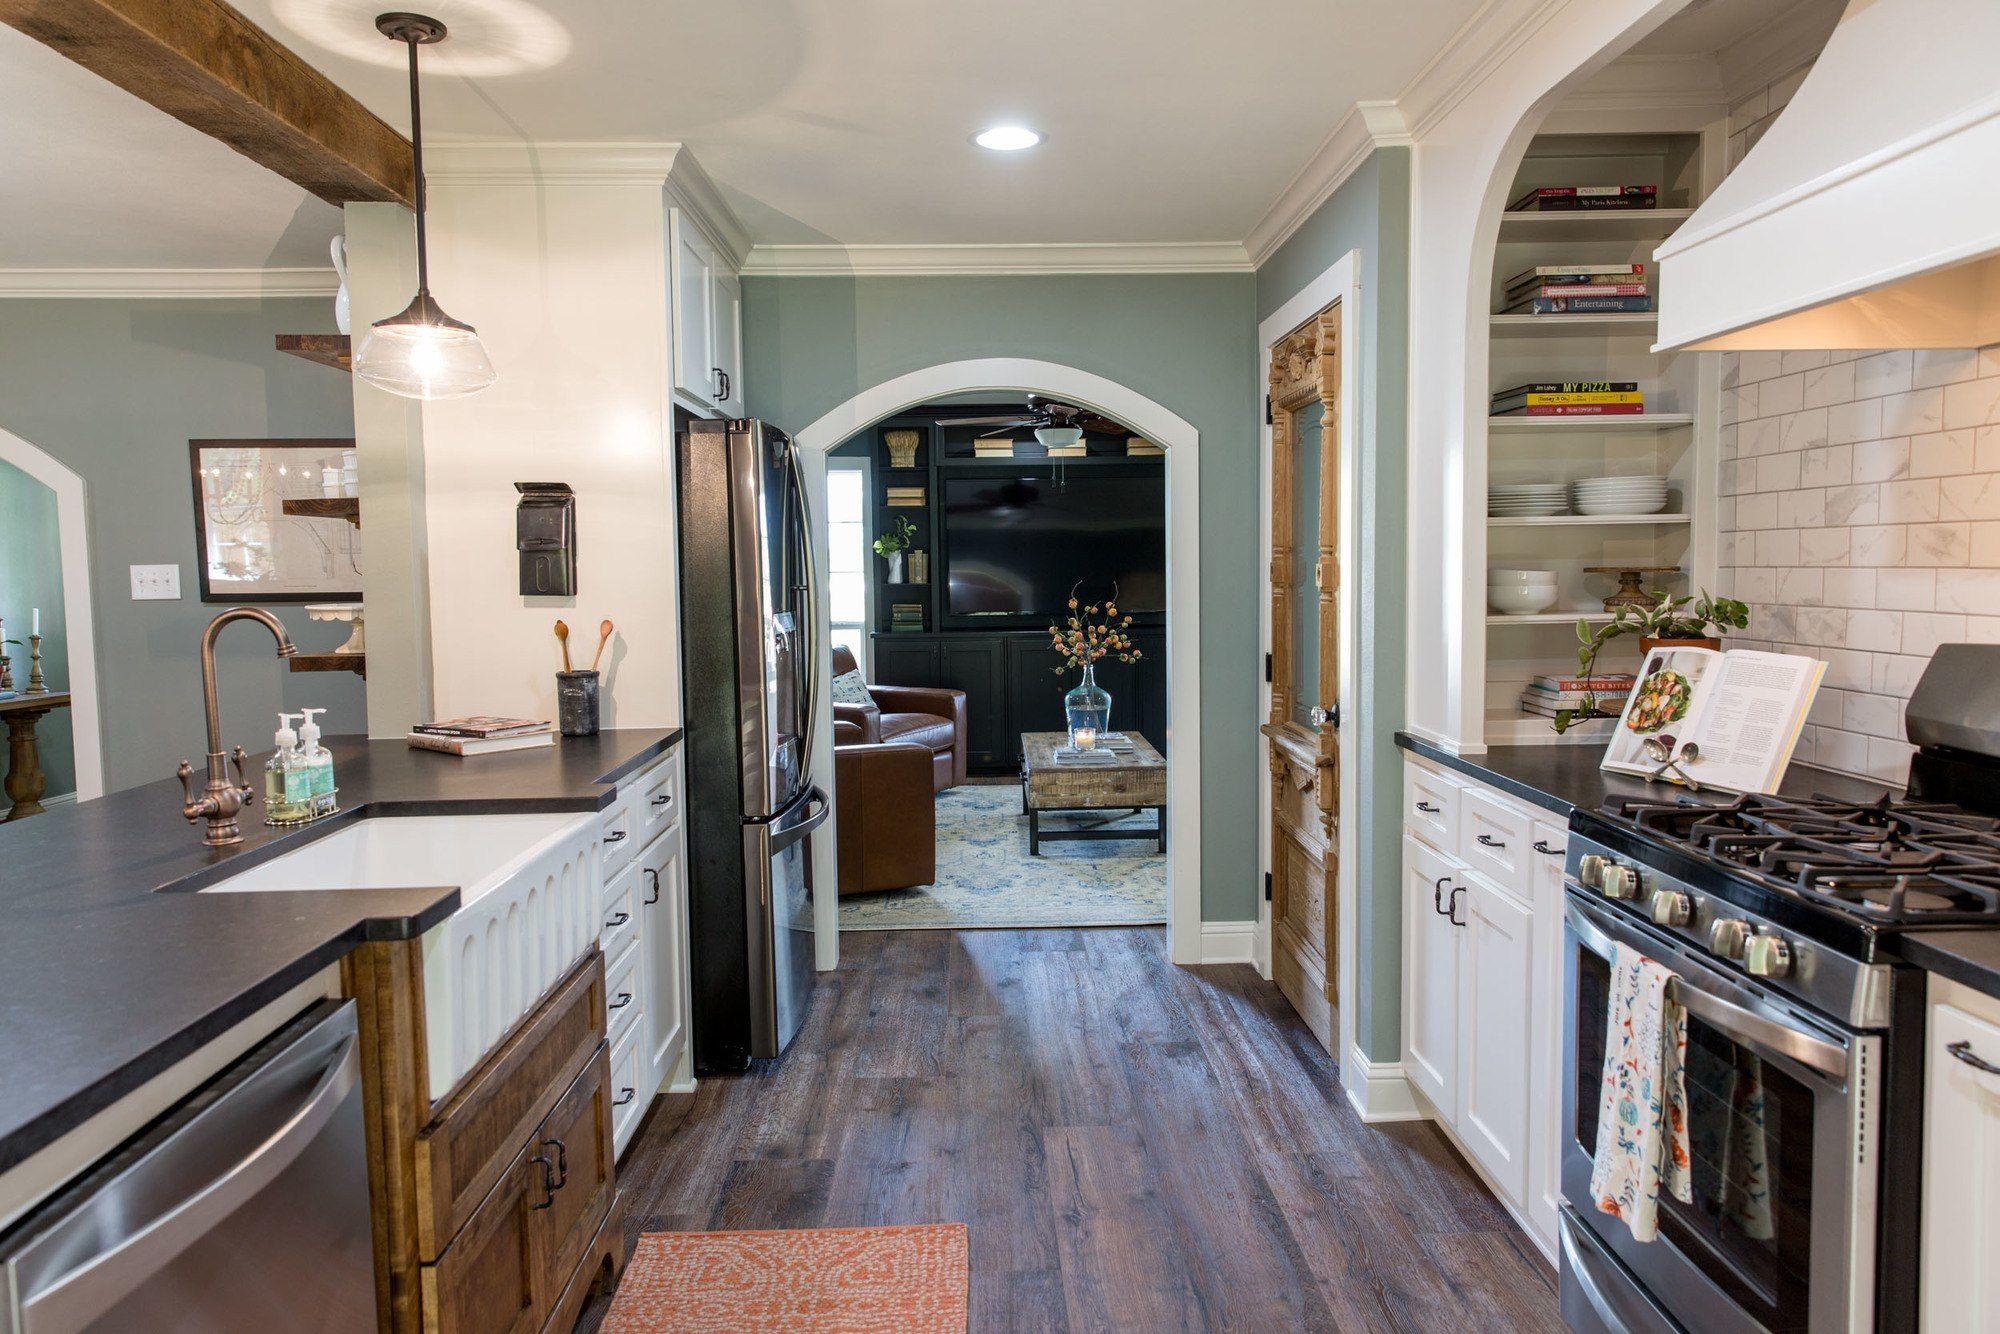 Episode 07- The Mexia Major House - Magnolia Market - Objective:  Open up the kitchen for lots of storage and countertop space. Mrs. Beachum loves to cook!